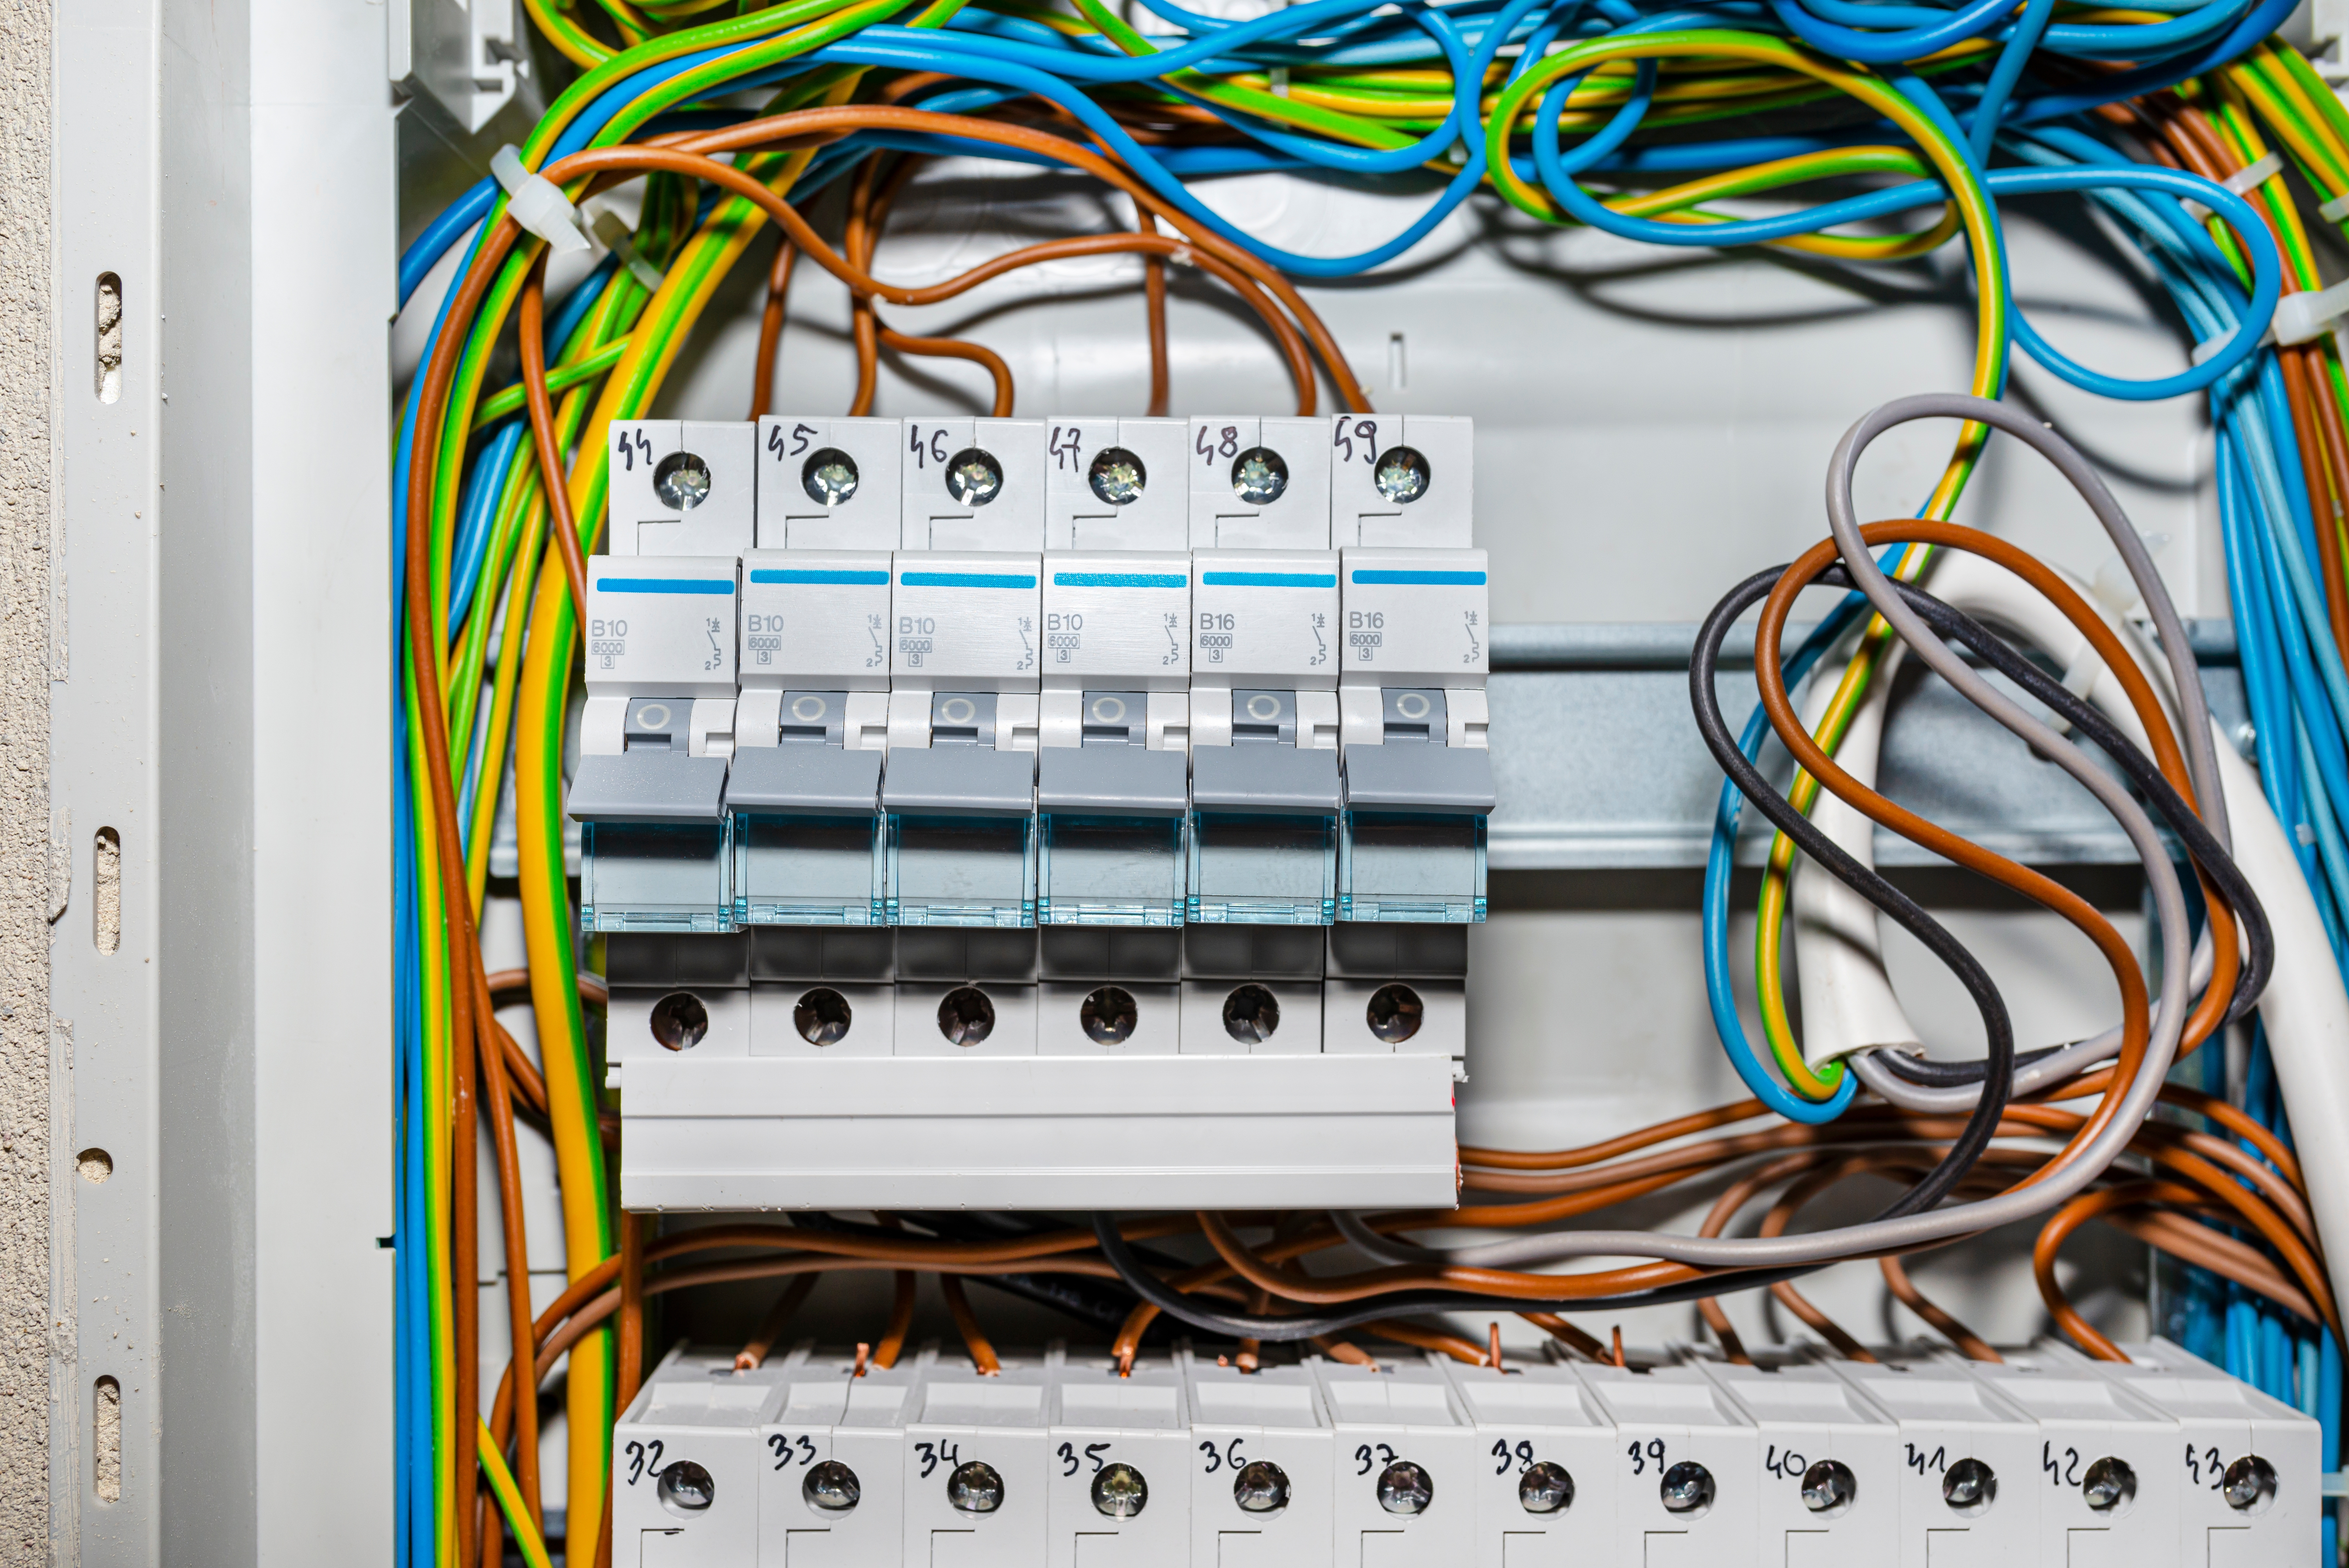 fuse box - electrical wires